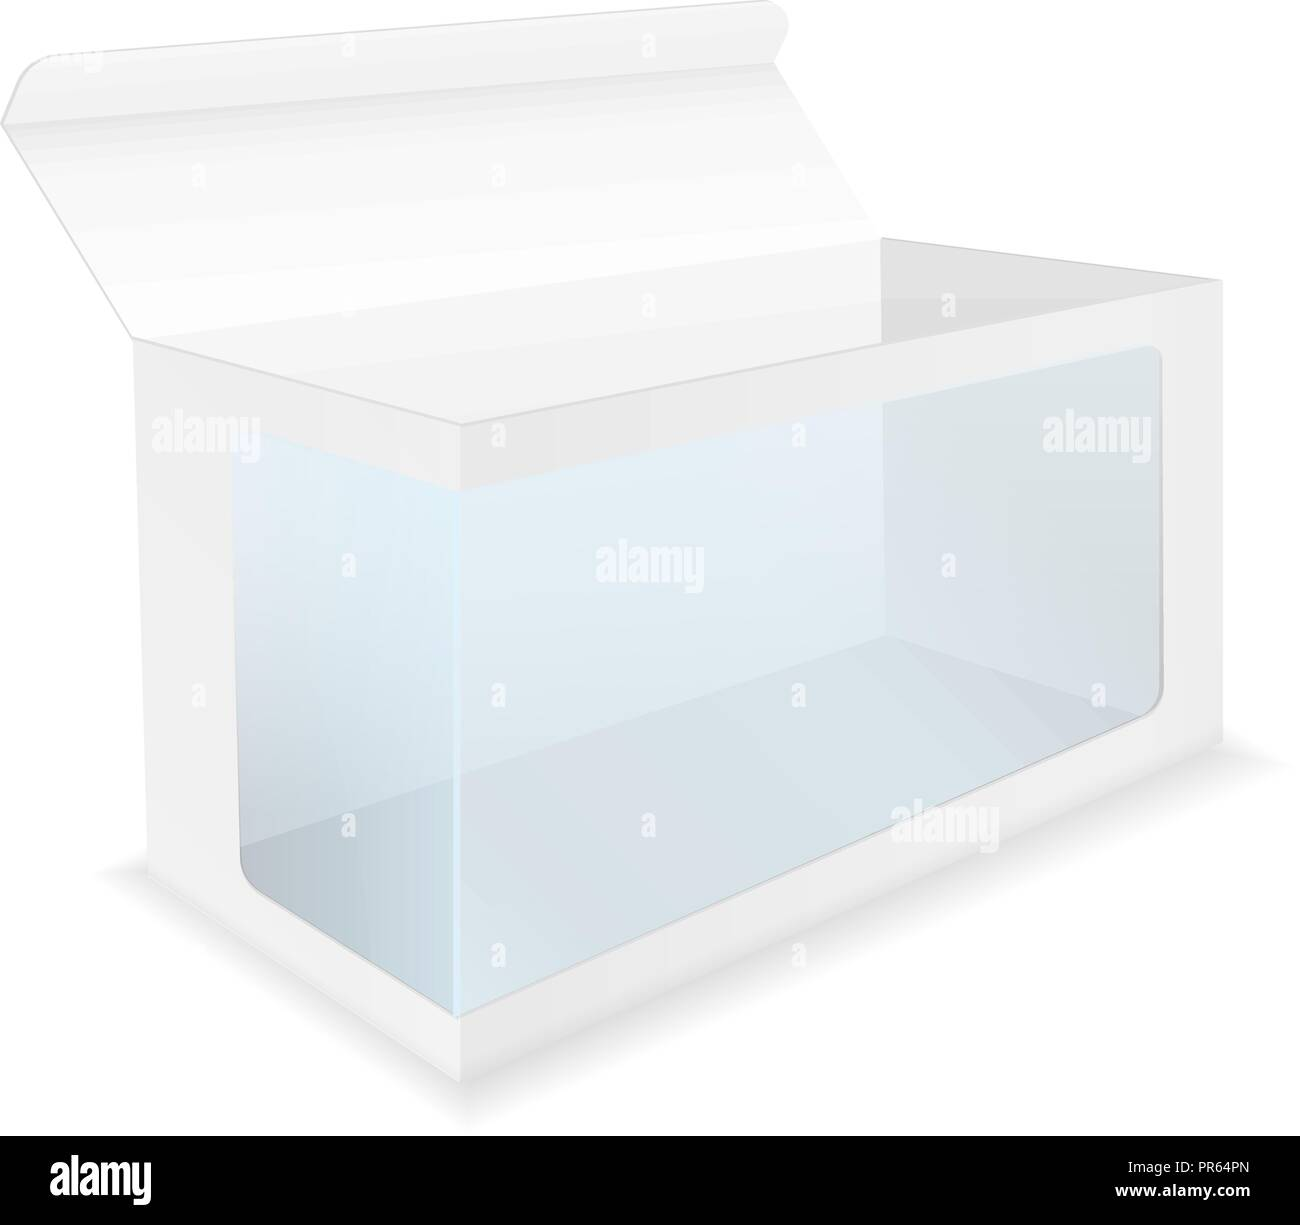 White box with transparent display window - Stock Image